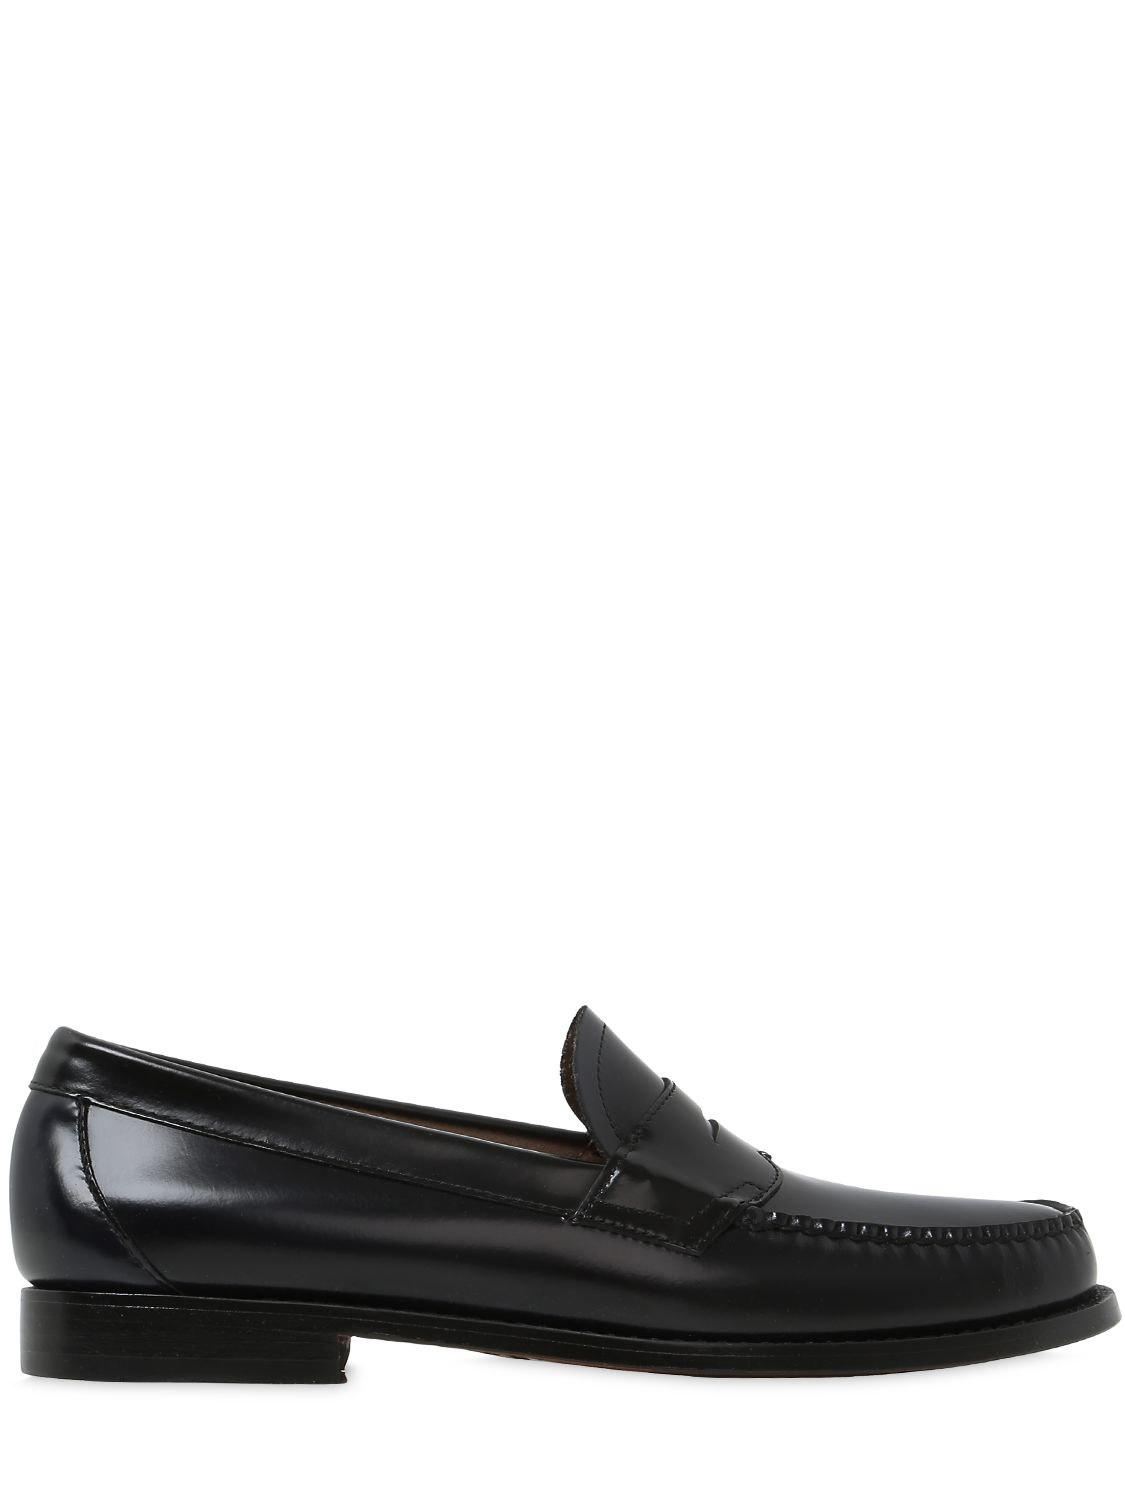 6193a59a341 G.H.BASS Weejun Logan 2 Tone Leather Penny Loafer in Black for Men ...